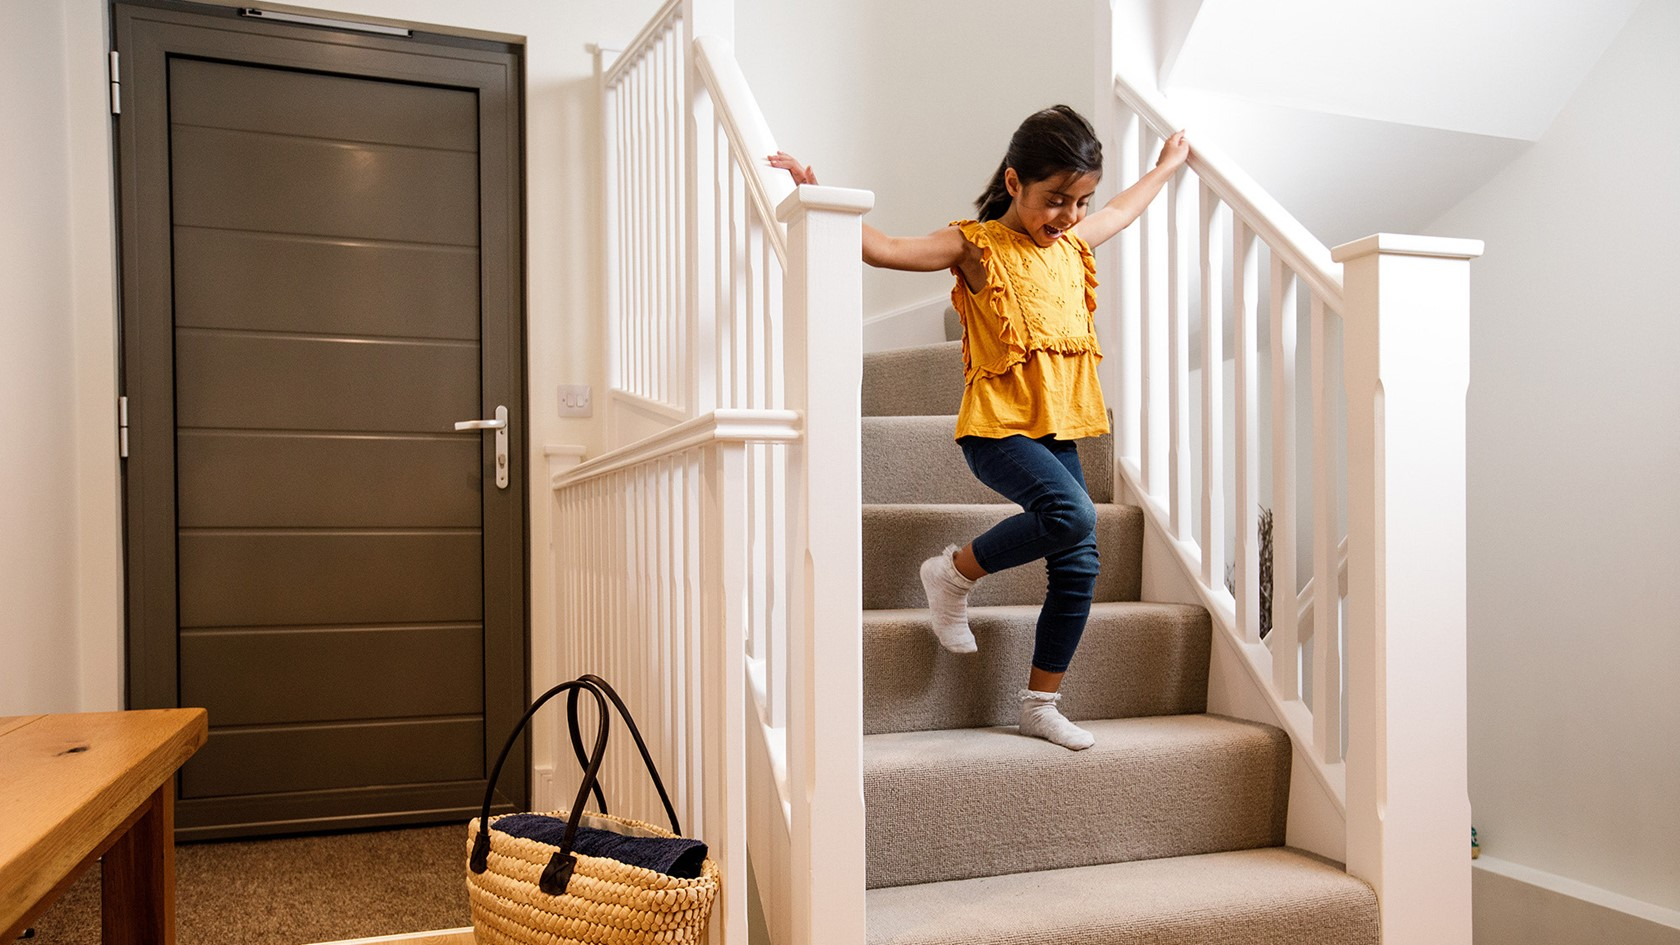 A young girl runs down the stairs in a modern electric home.